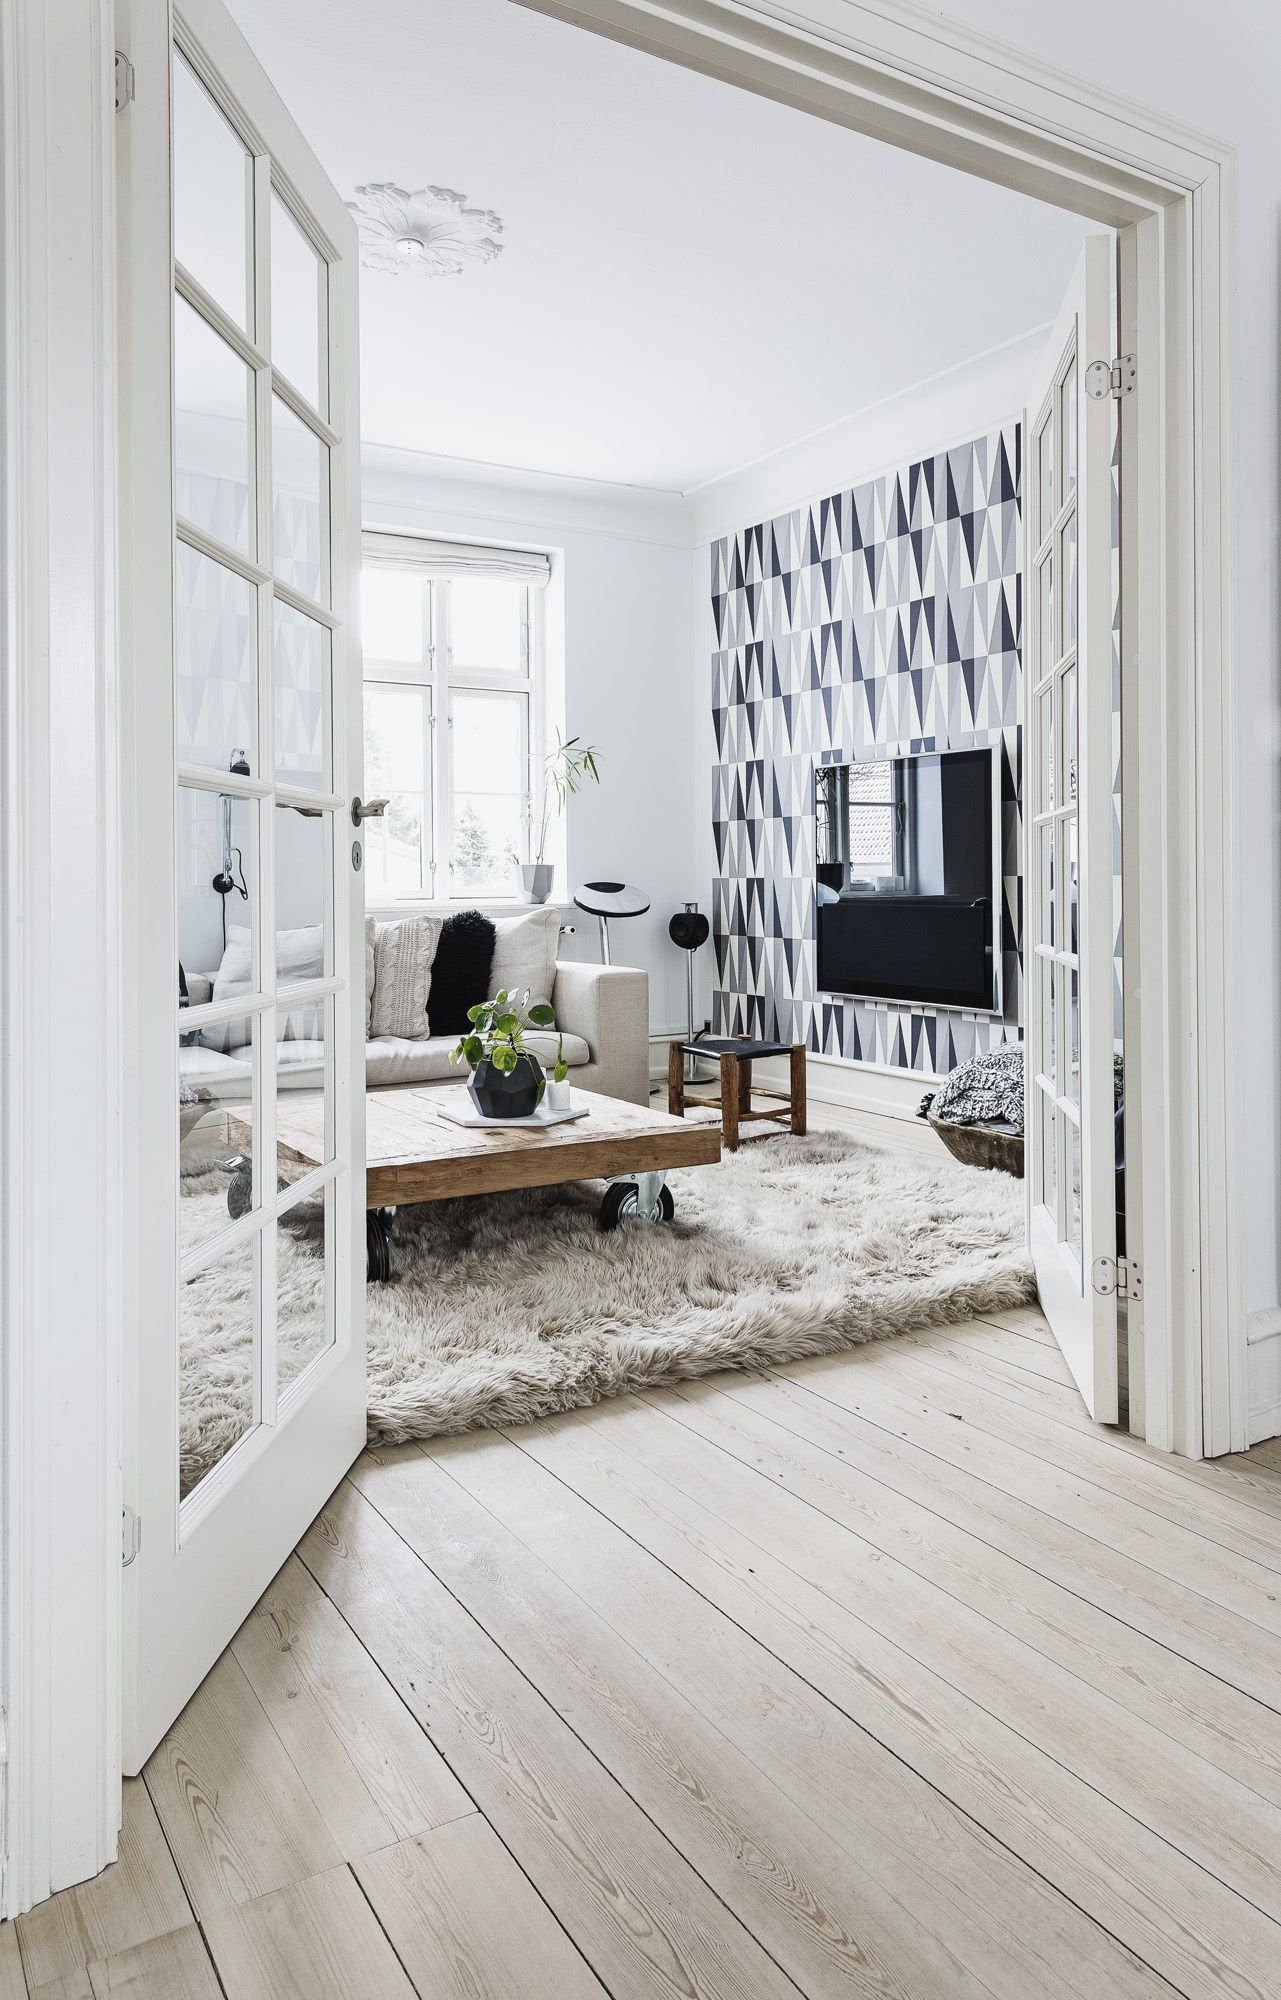 Thuis bij Betina Stampe   Neutral tones, Interiors and House